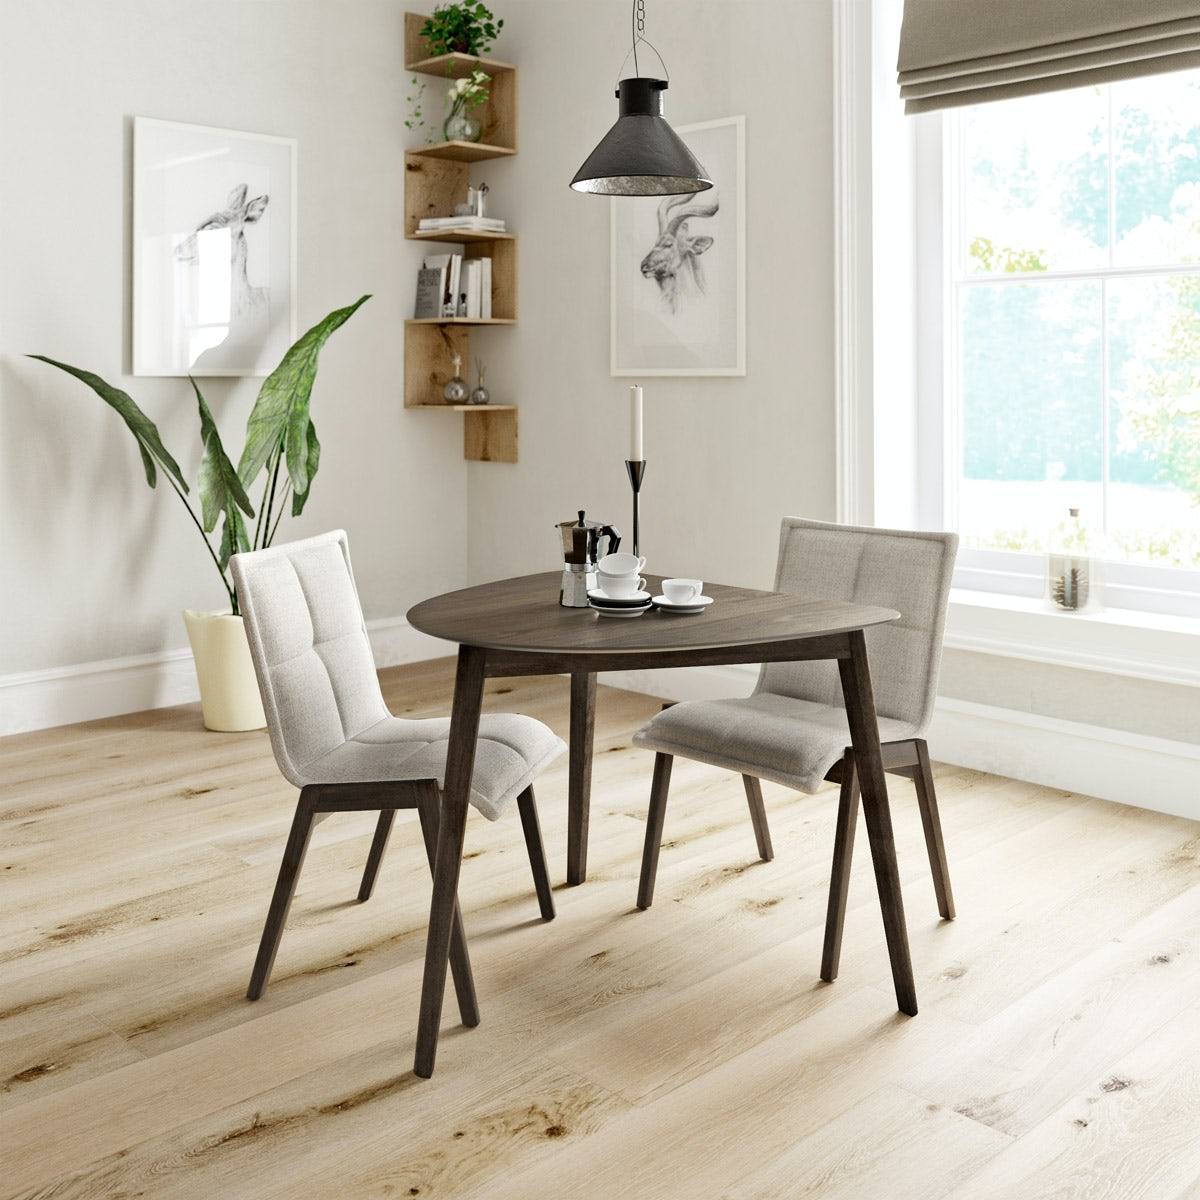 Harrison Walnut Table with 2x Hadley beige chairs